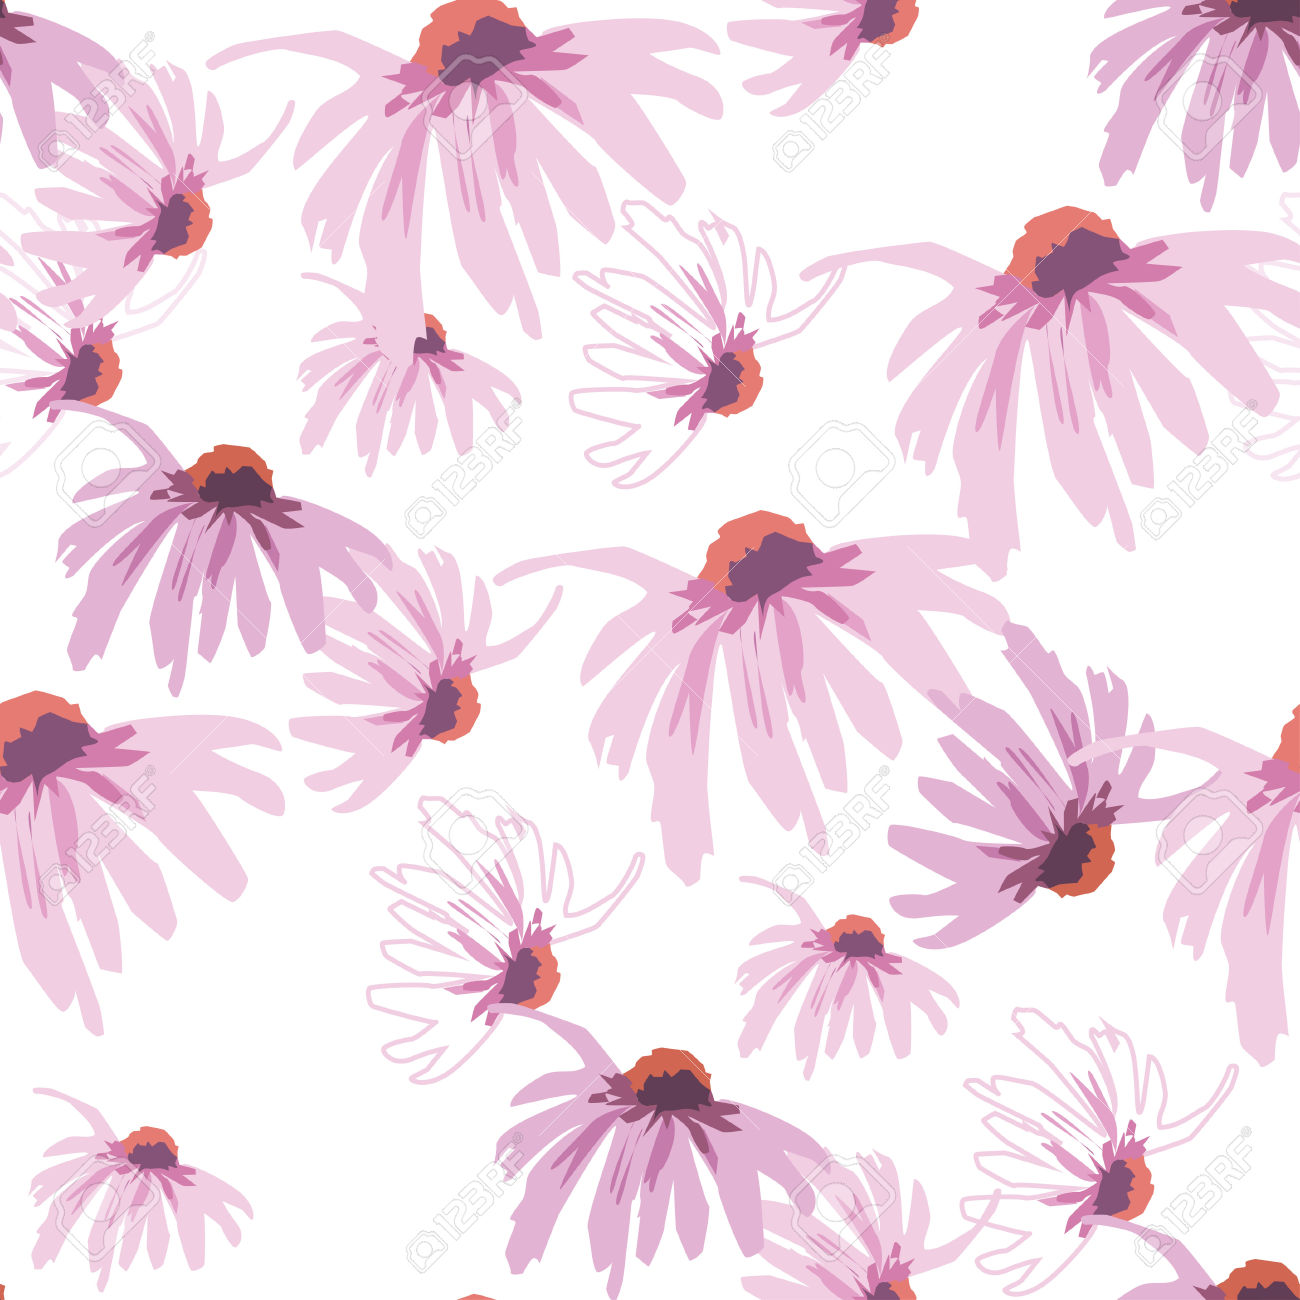 Seamless Densely Filled Pattern With Echinacea Flower Isolated.